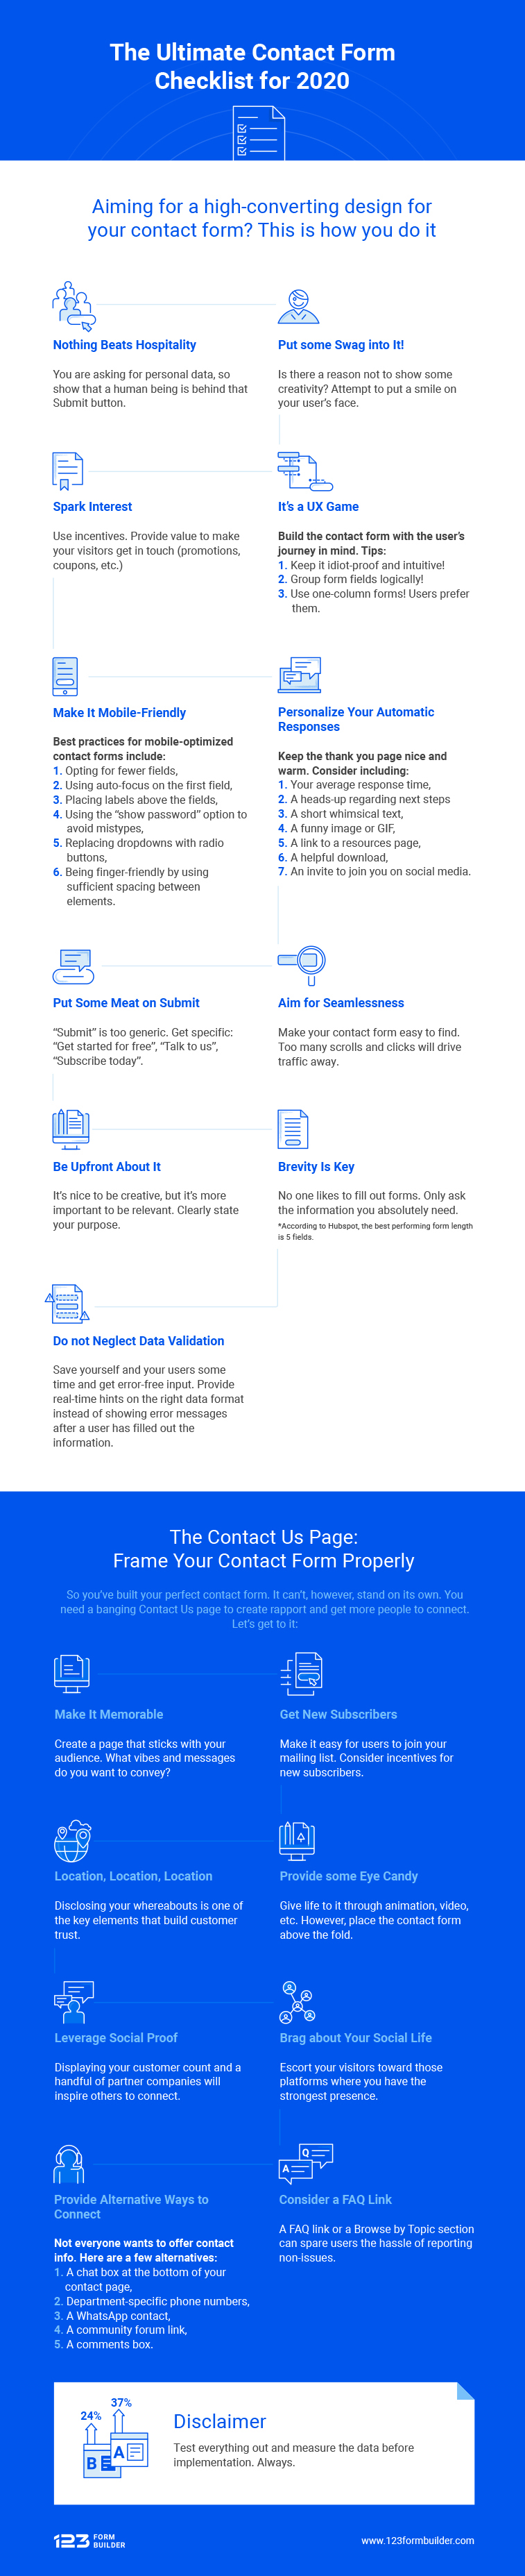 Infographic lists contact page tips and notes